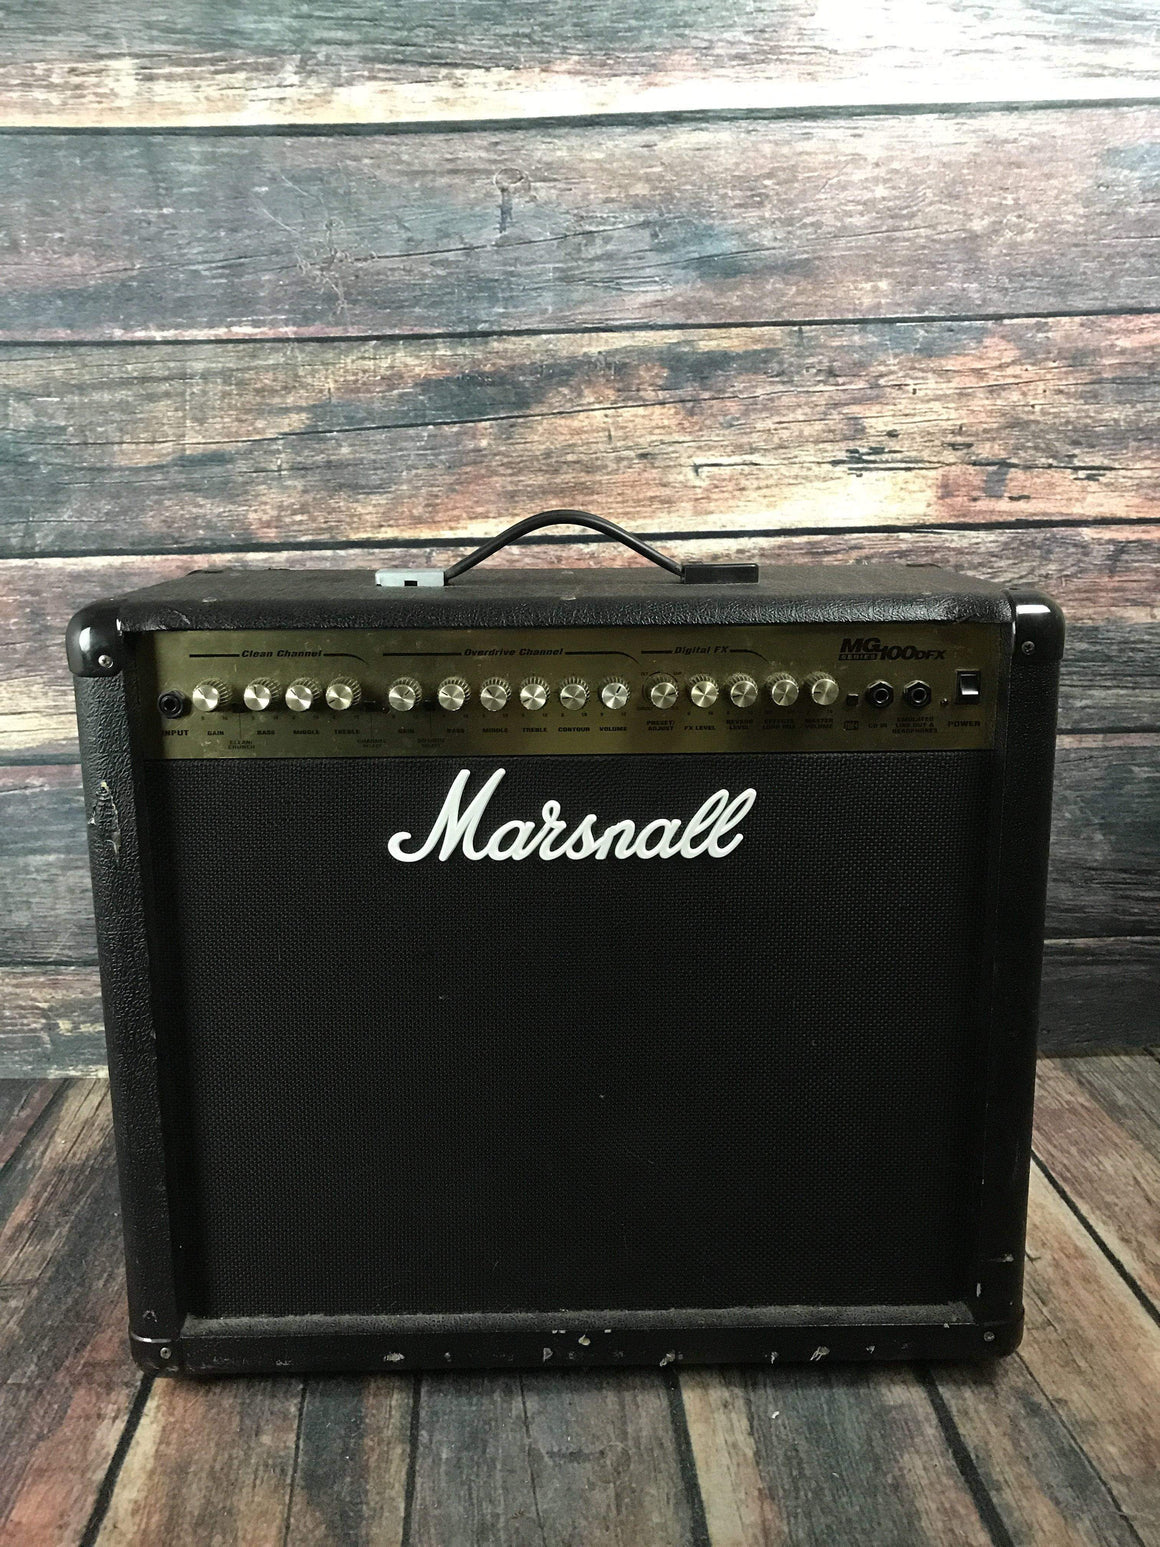 Marshall Amp Used Marshall MG100DFX Guitar Combo Amp